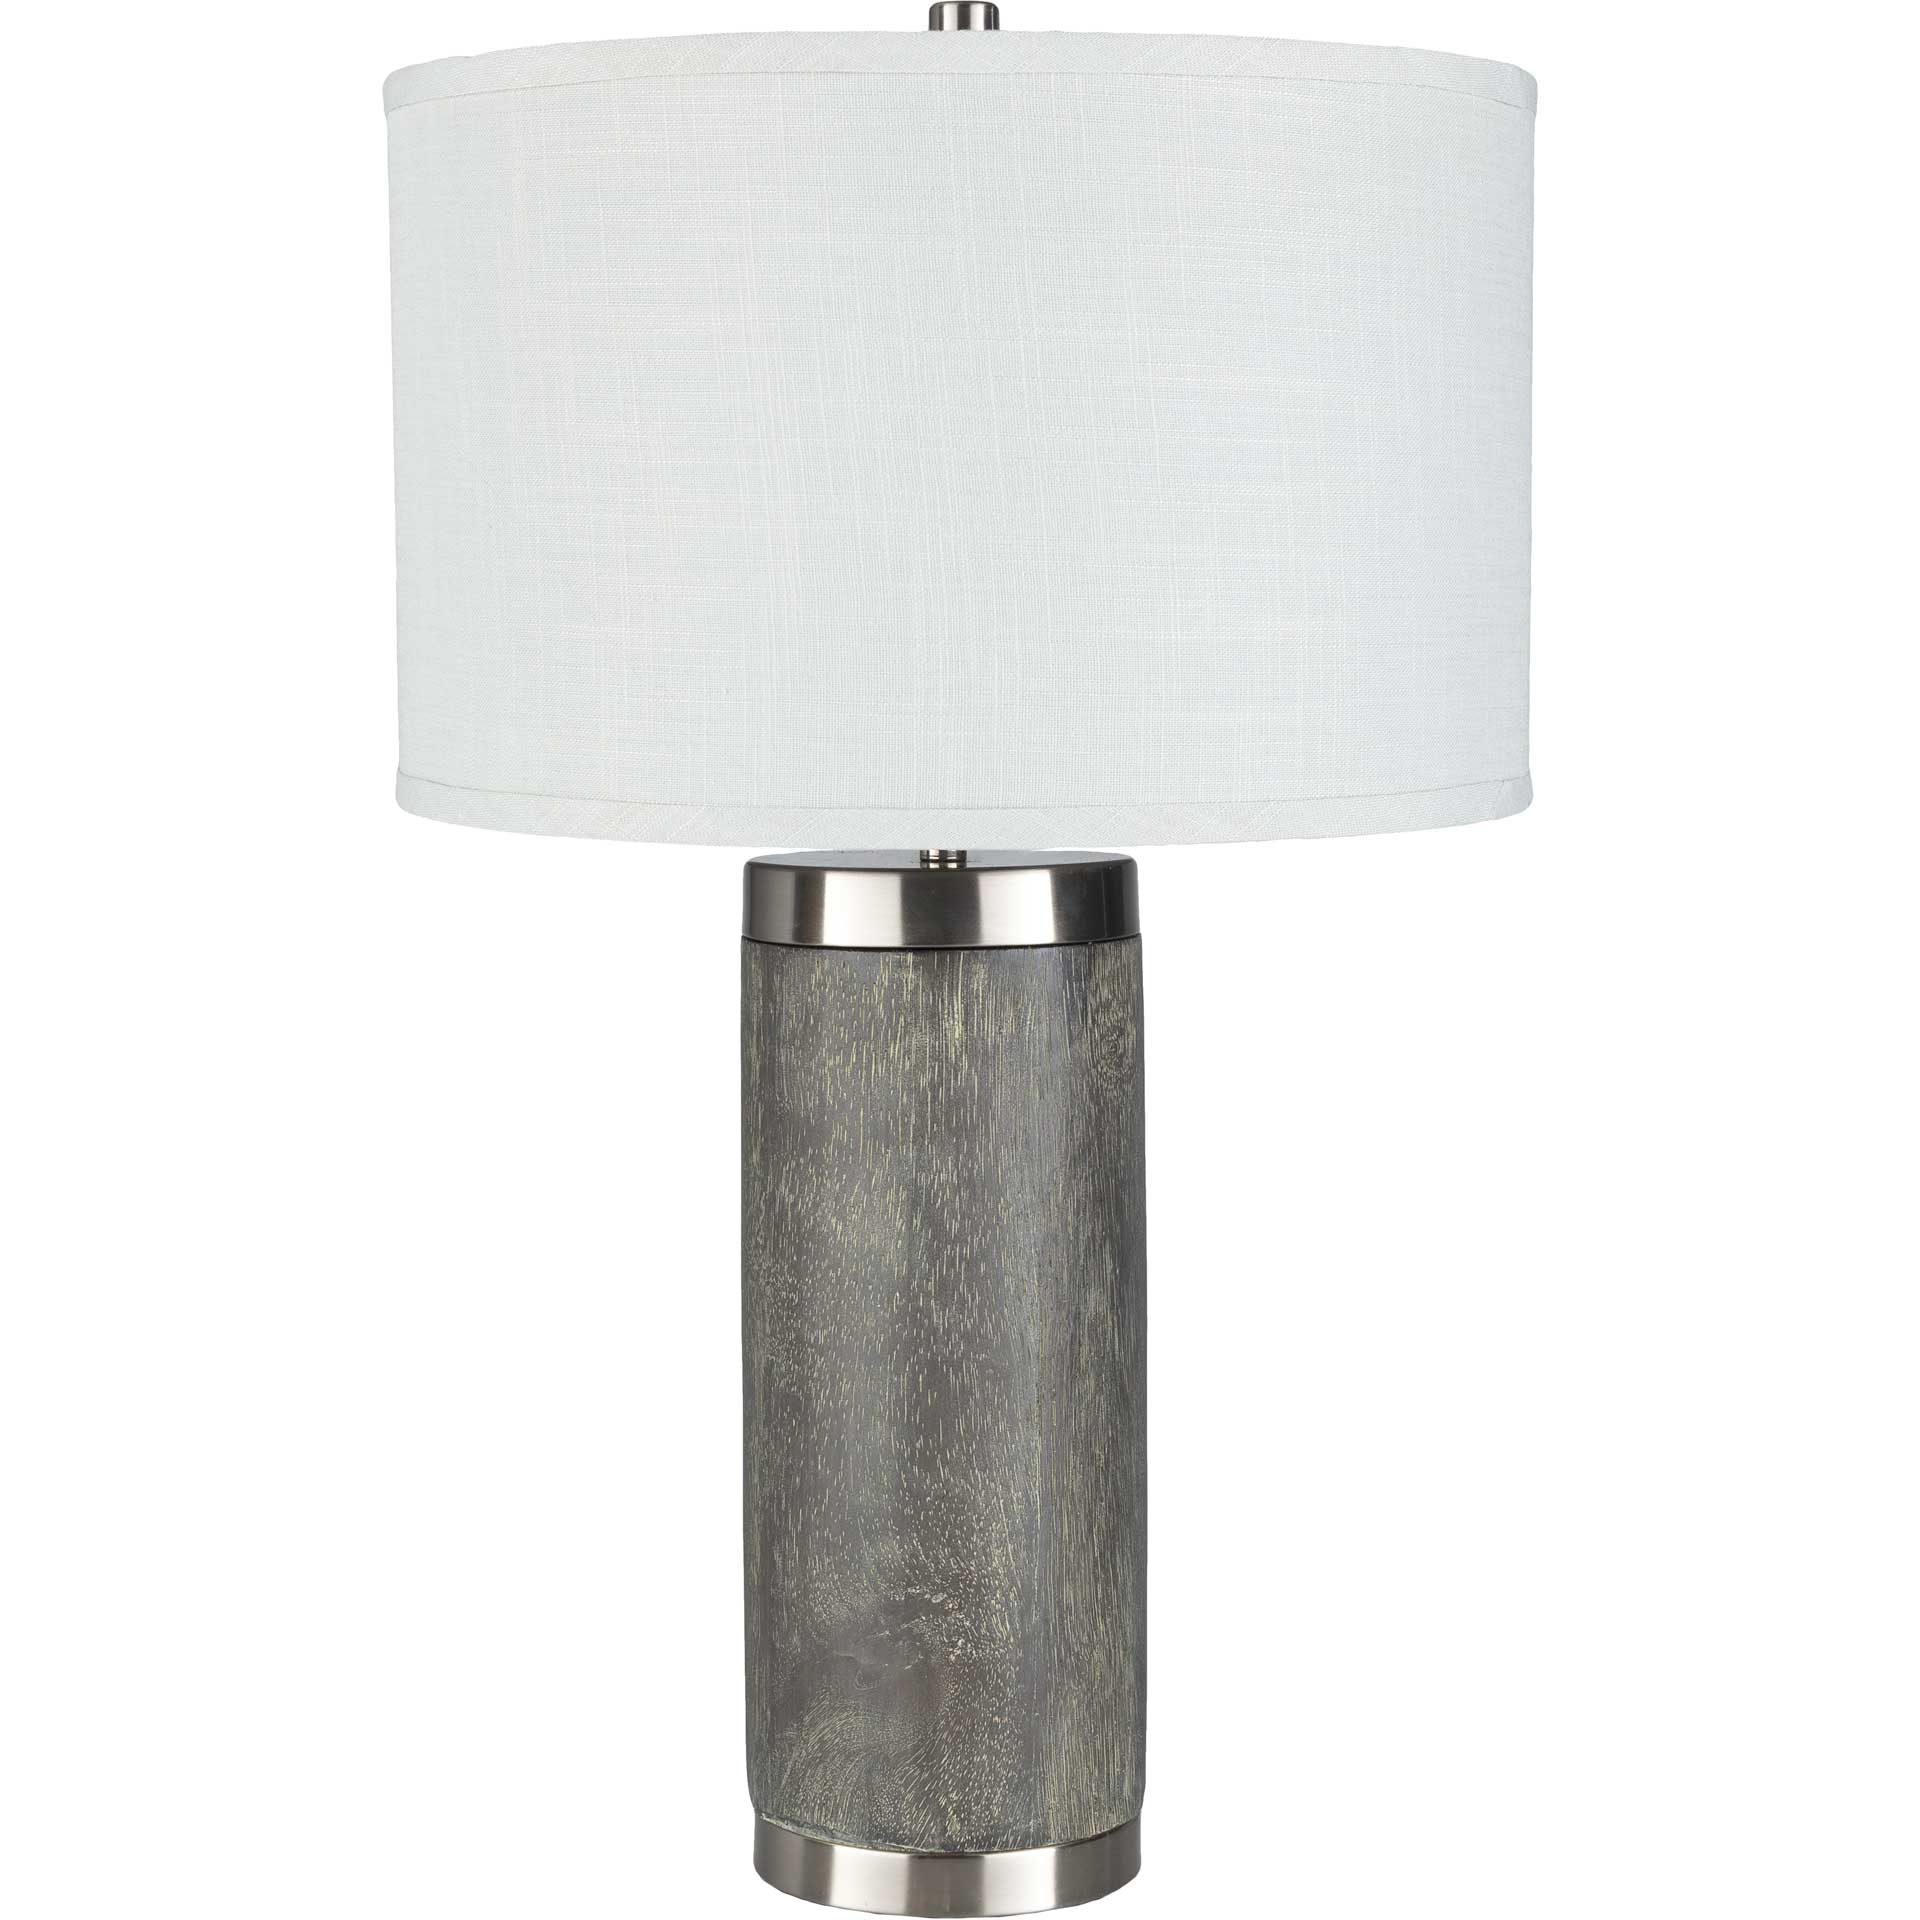 Lilith Table Lamp Charcoal/White/Slate